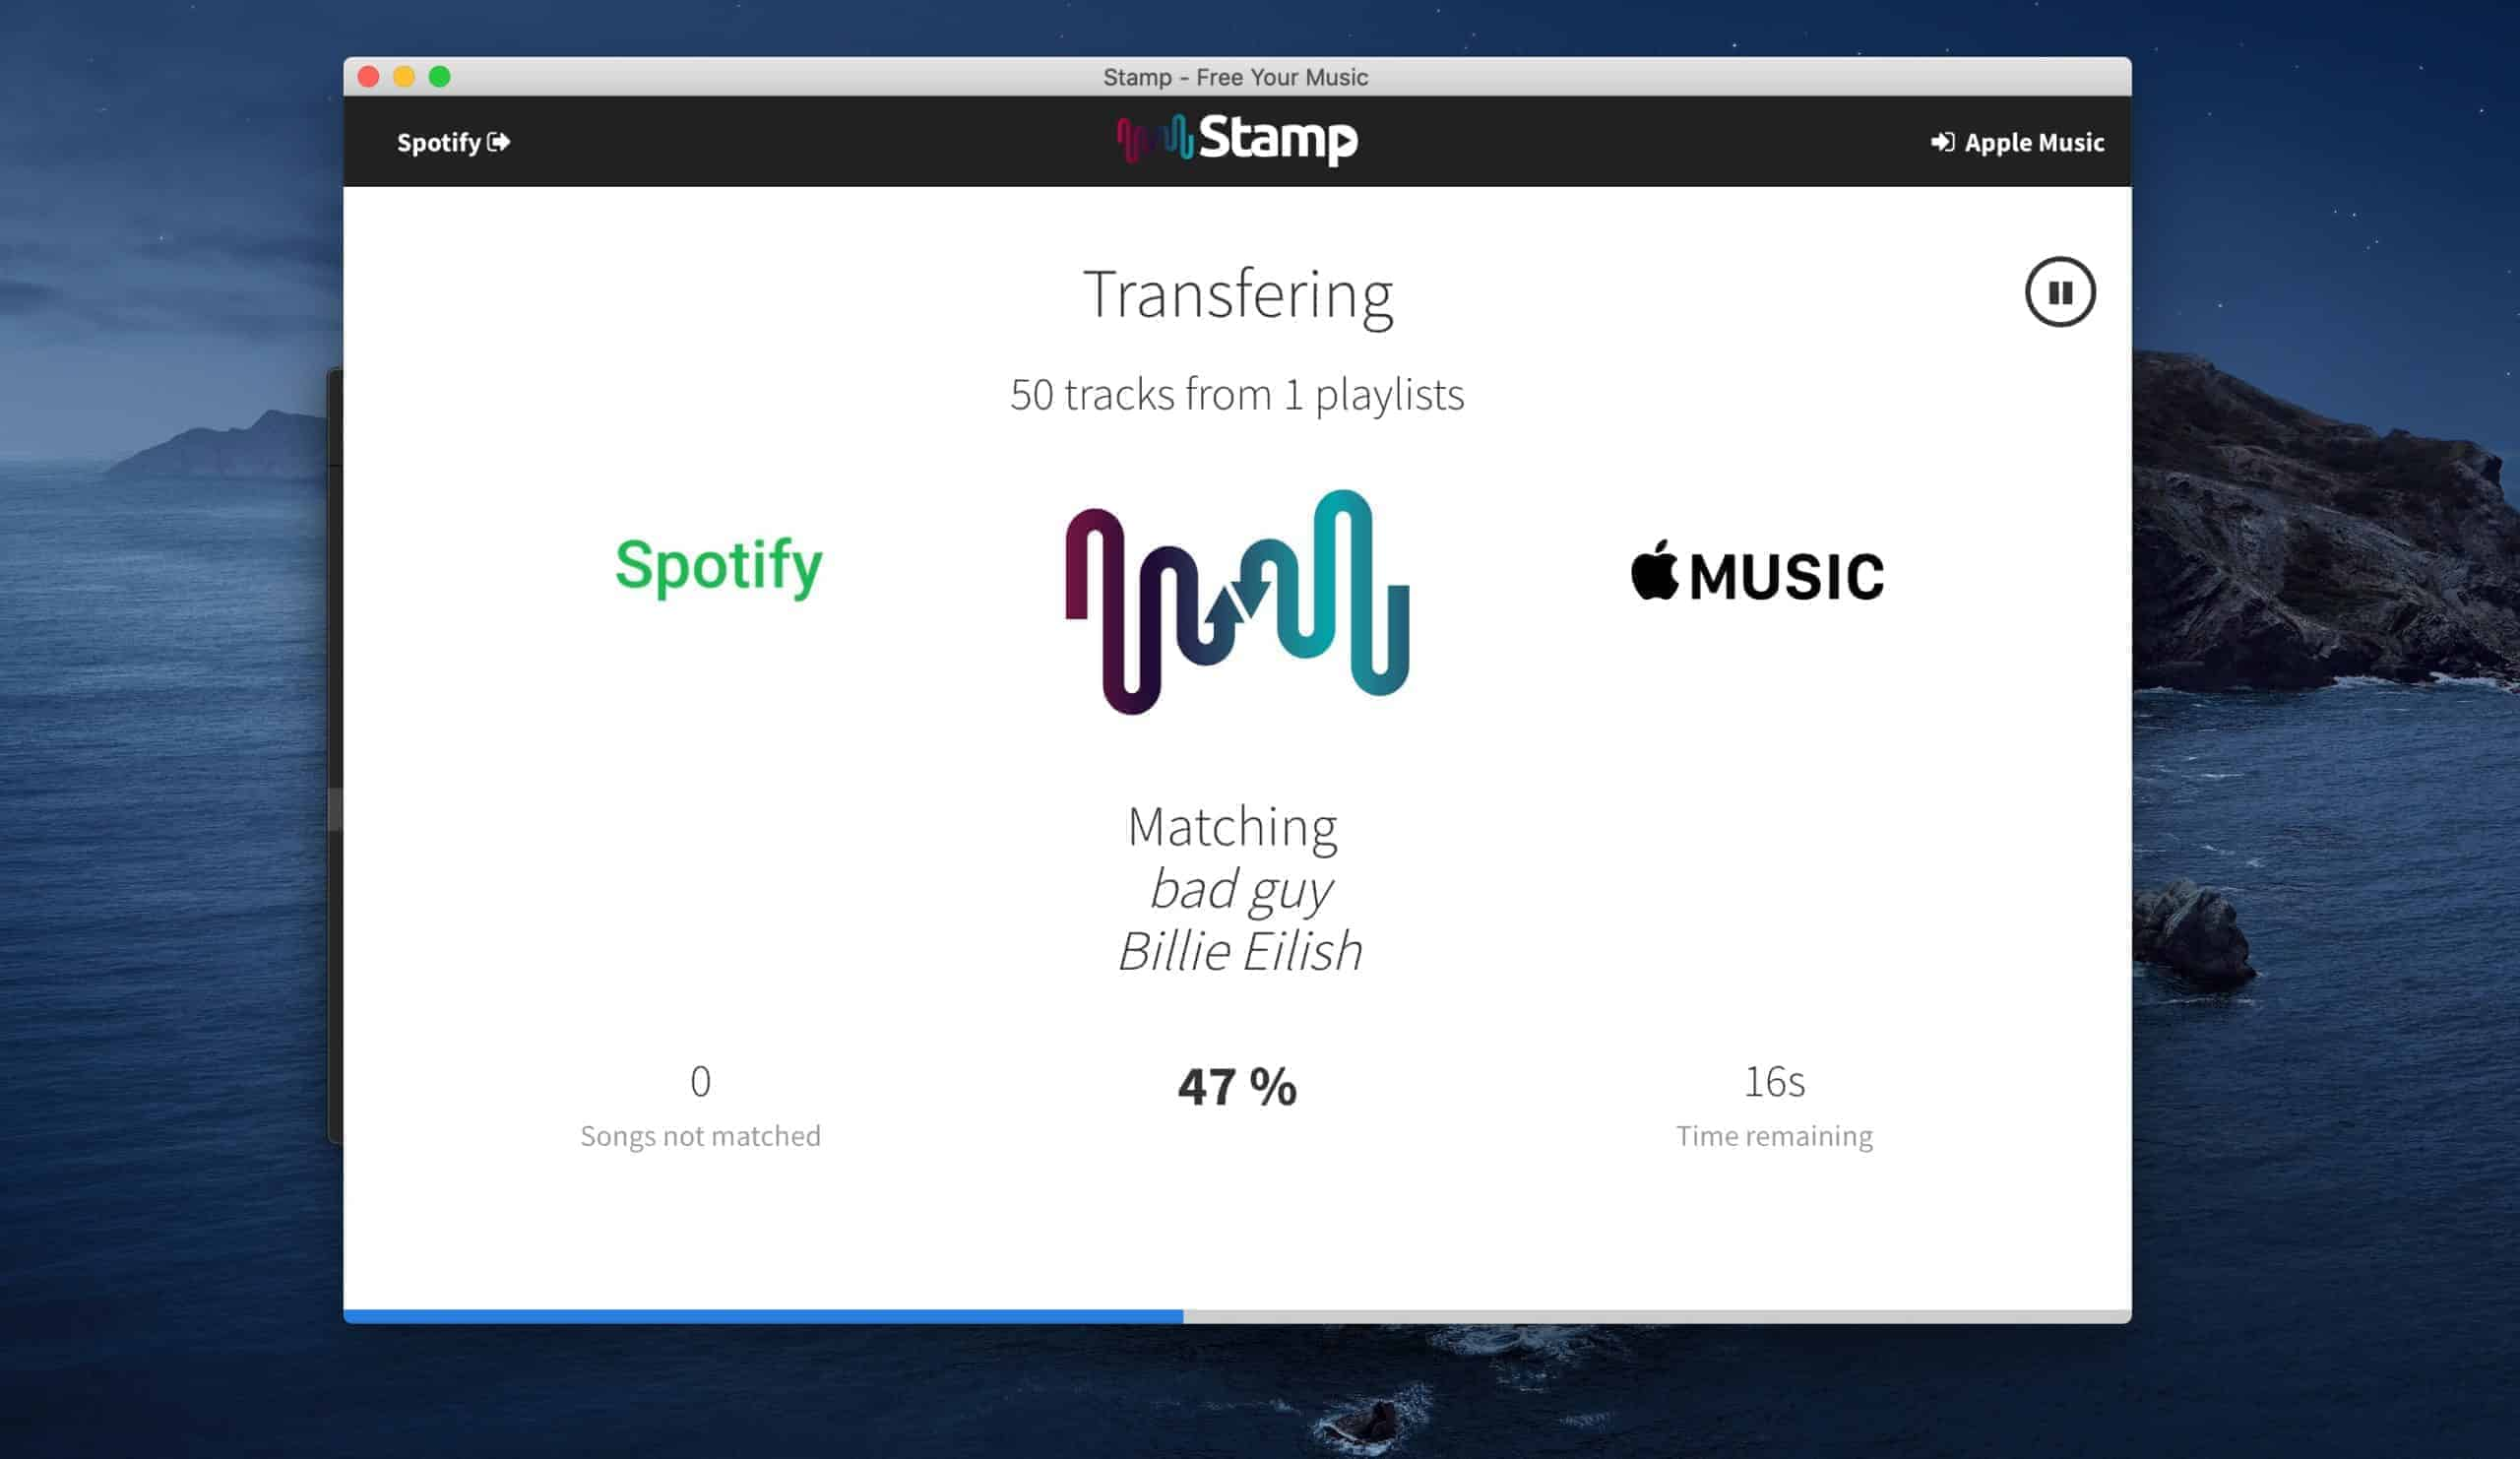 STAMP Playlisten Übertragen Spotify zu Apple Music